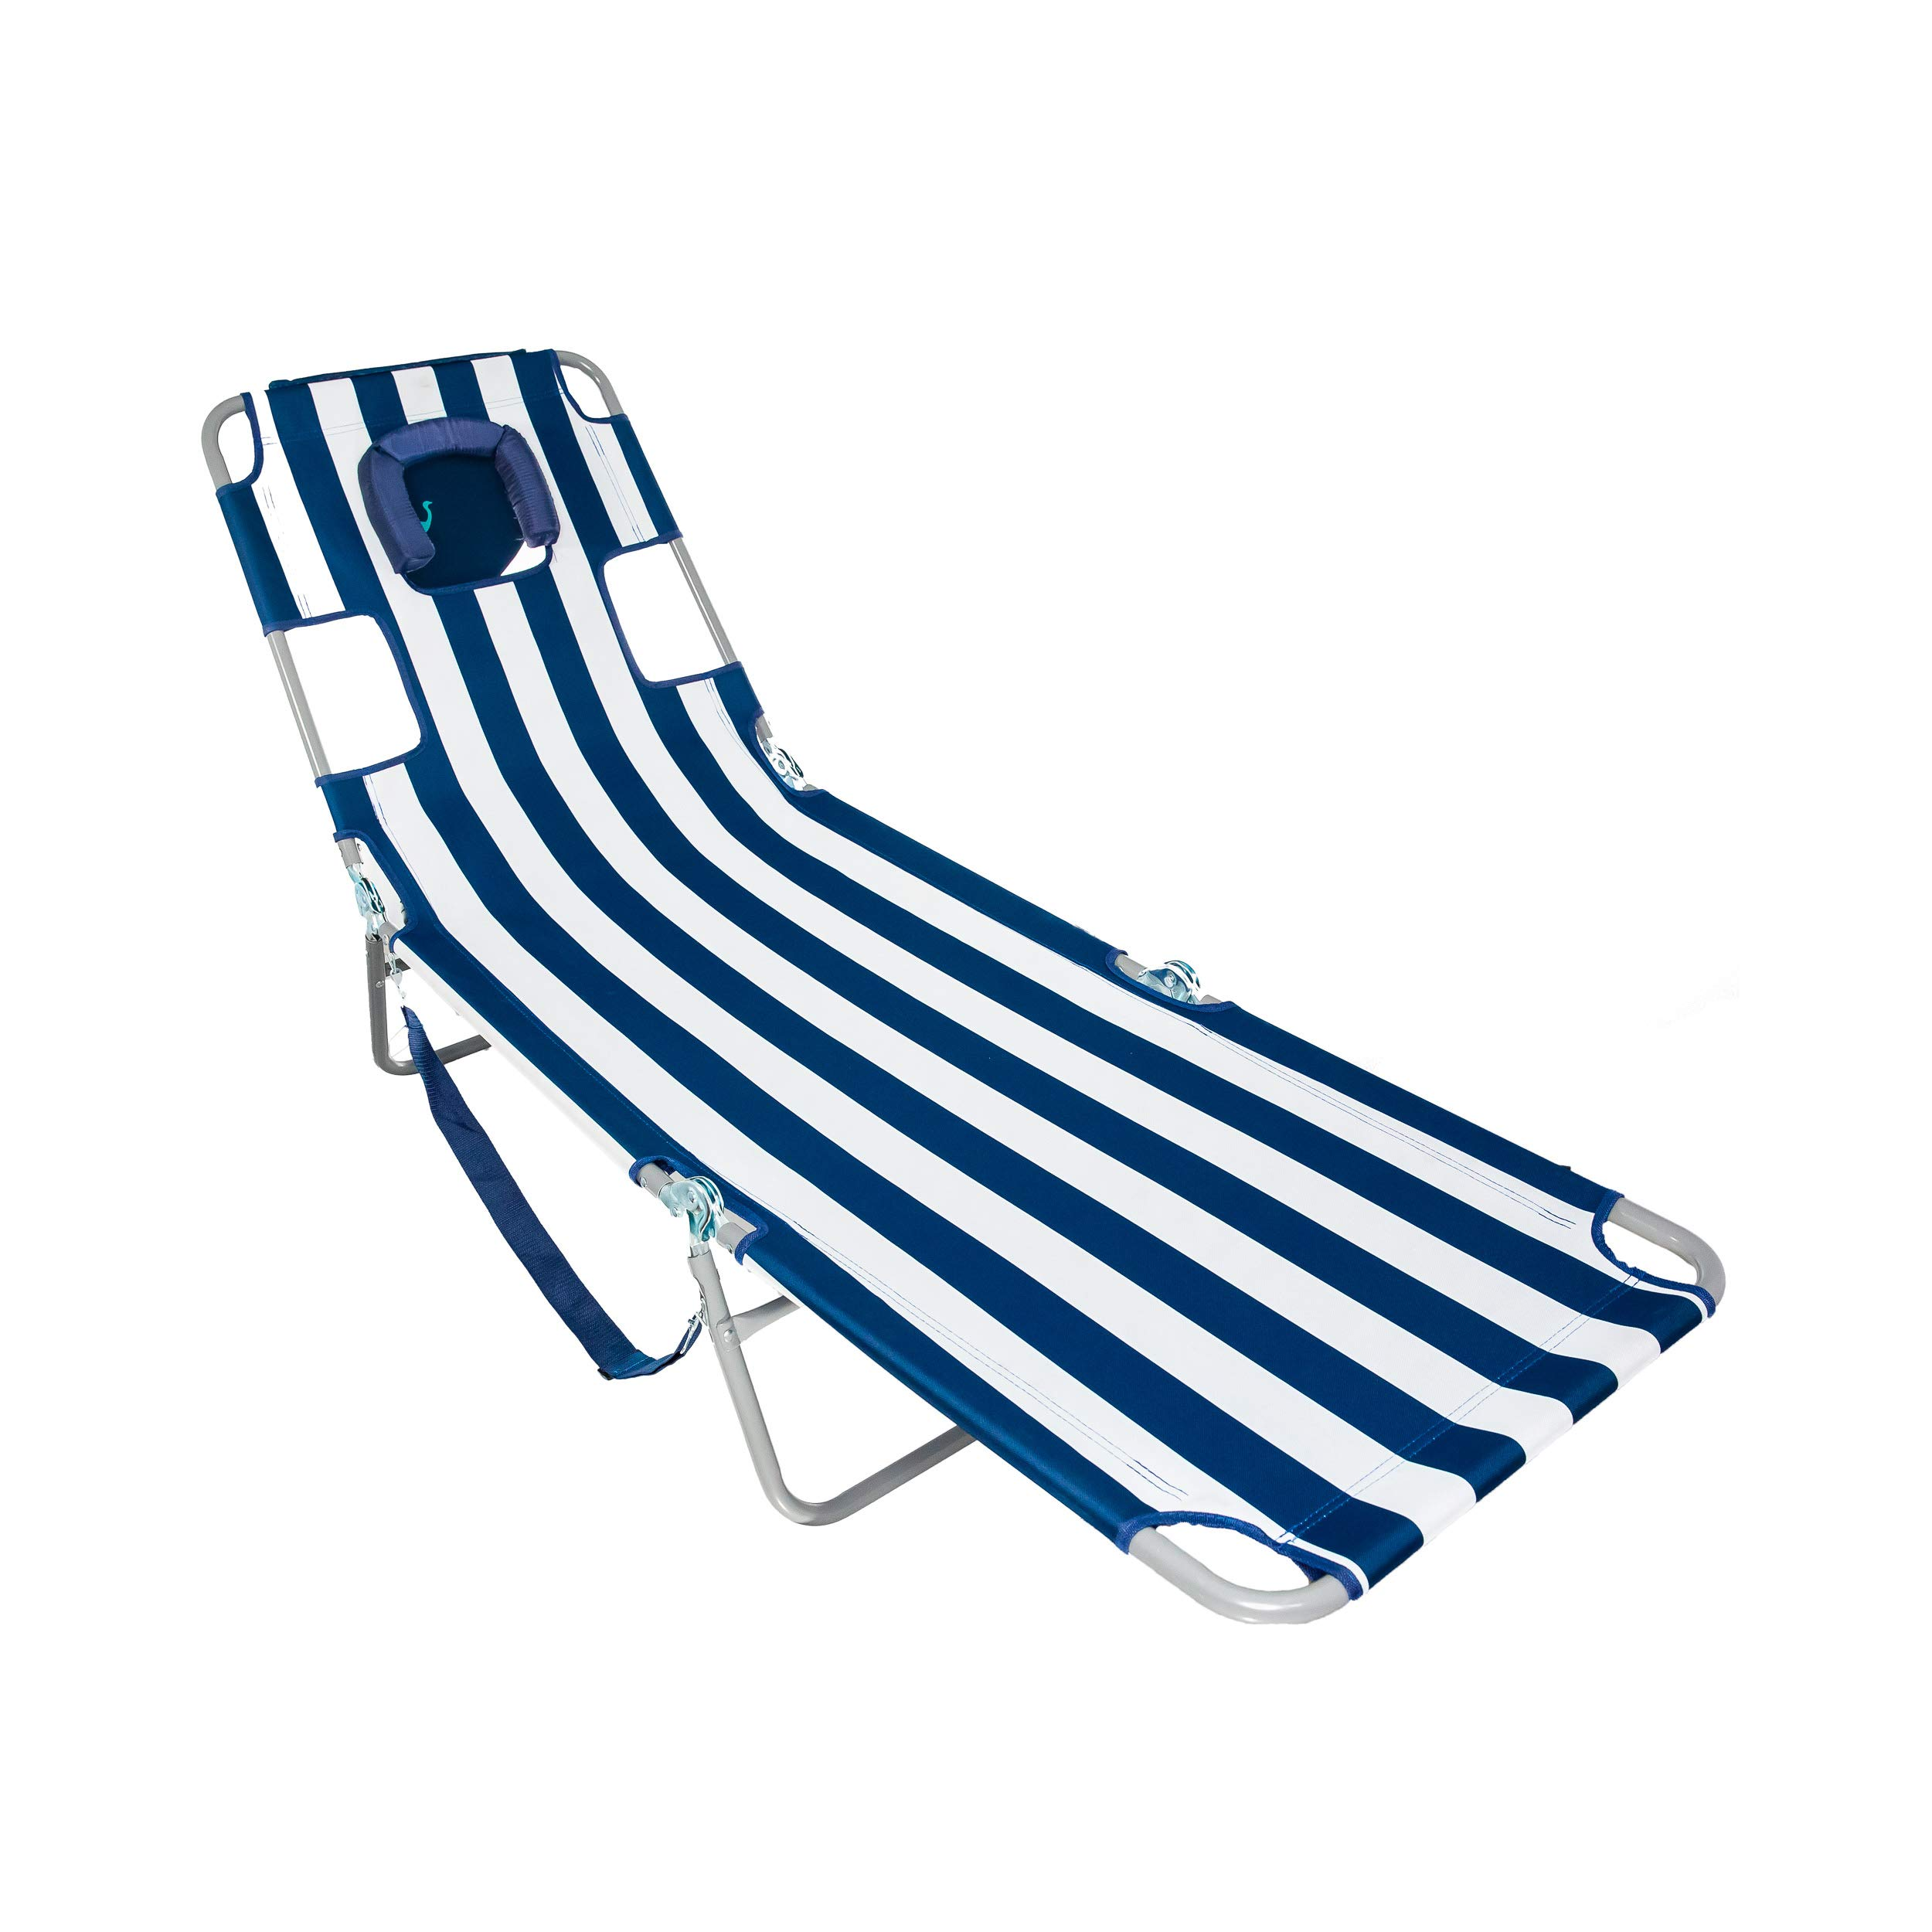 Ostrich CHS-1002S Chaise Lounge, 77.16 x 24.6 x 13.4 inches Assembled, Blue and White Striped